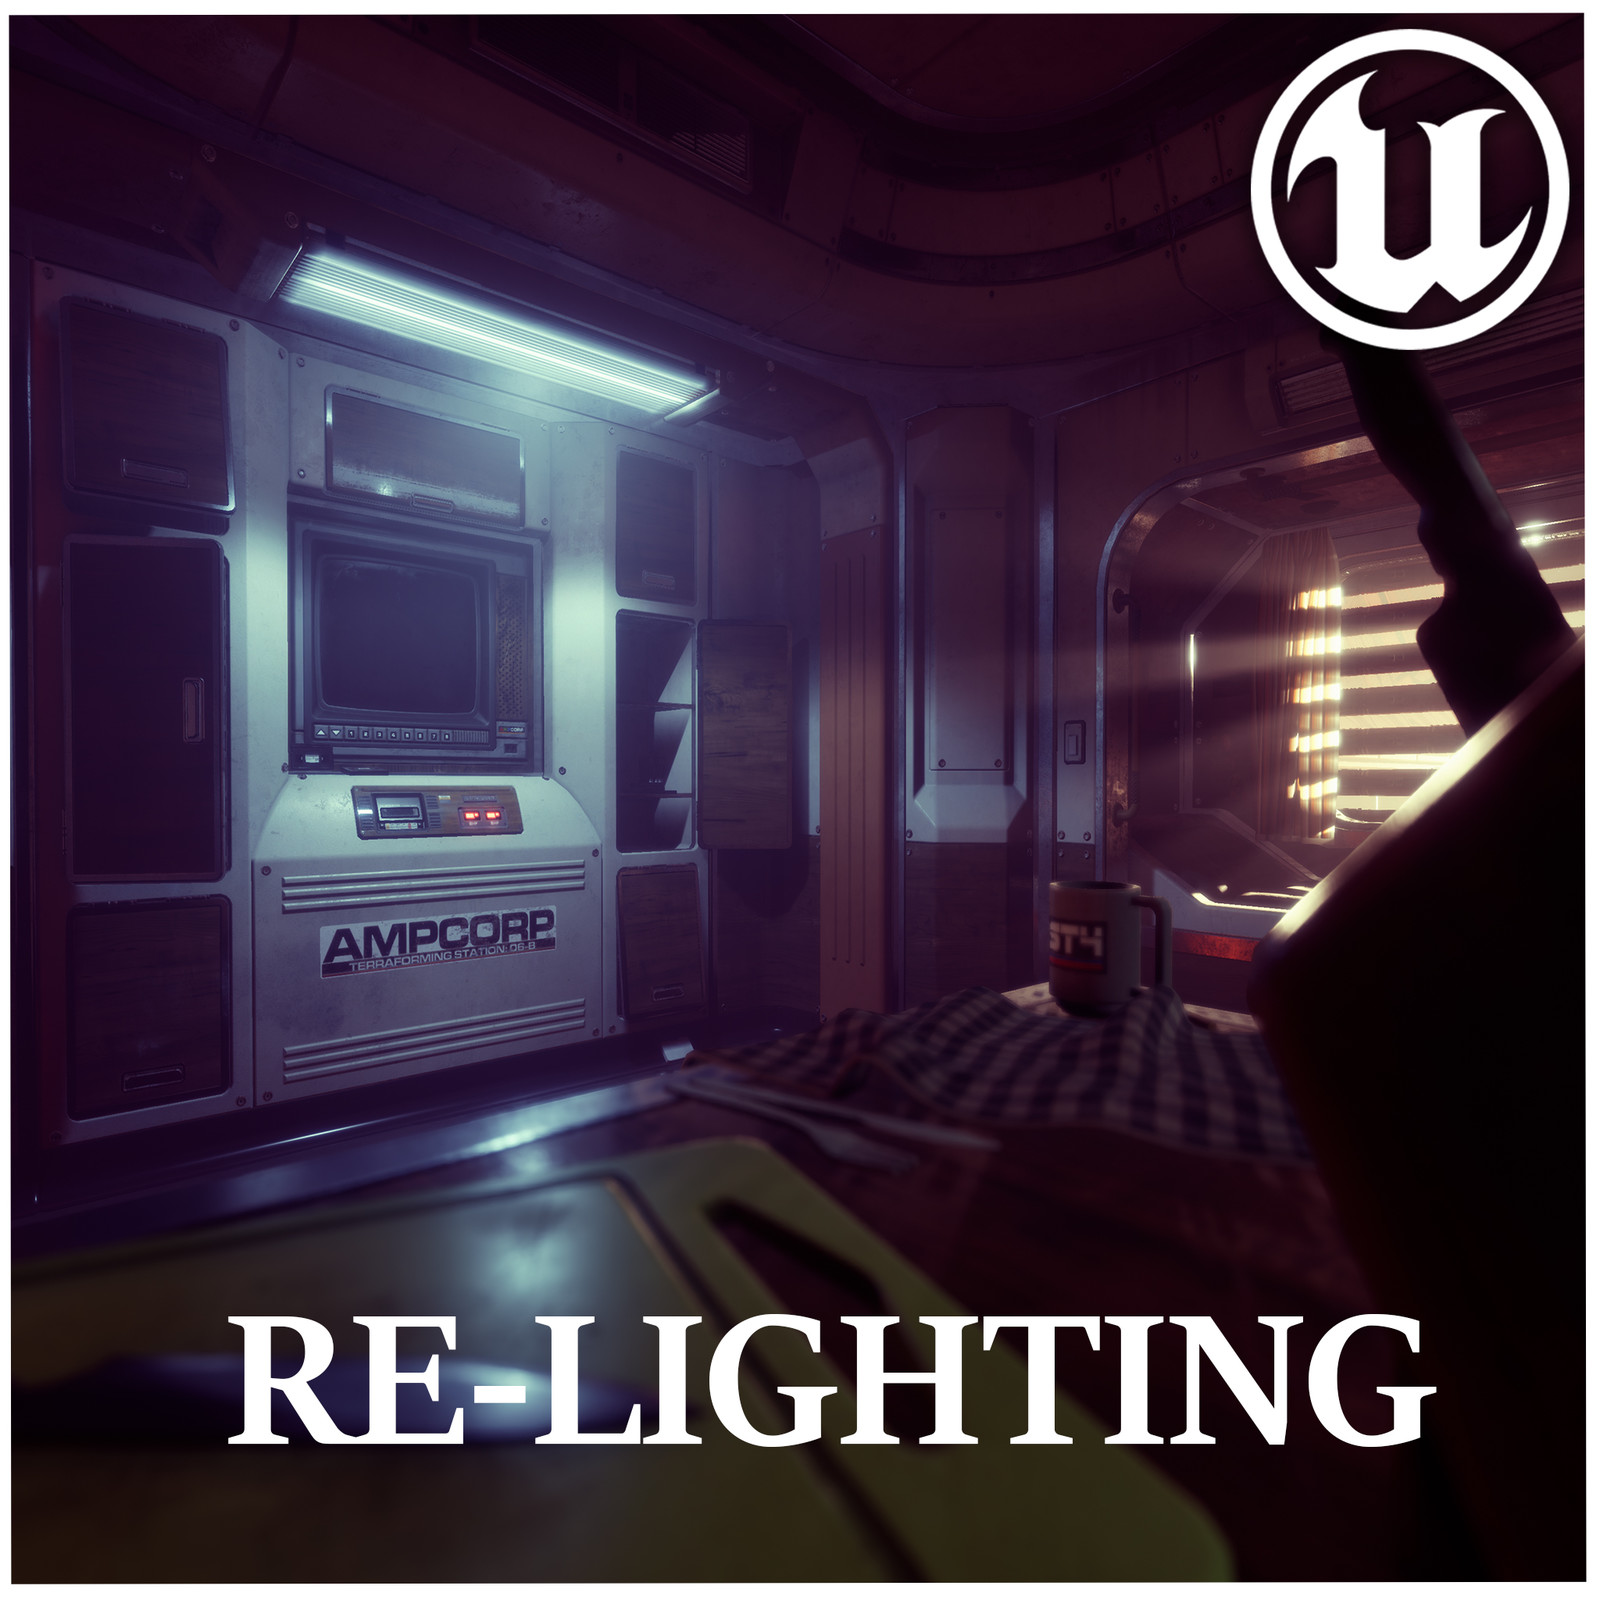 UE4 Alien Isolation Style Lighting | Liam Tart's Sci-Fi Bunk - Cyberpunk ReLight